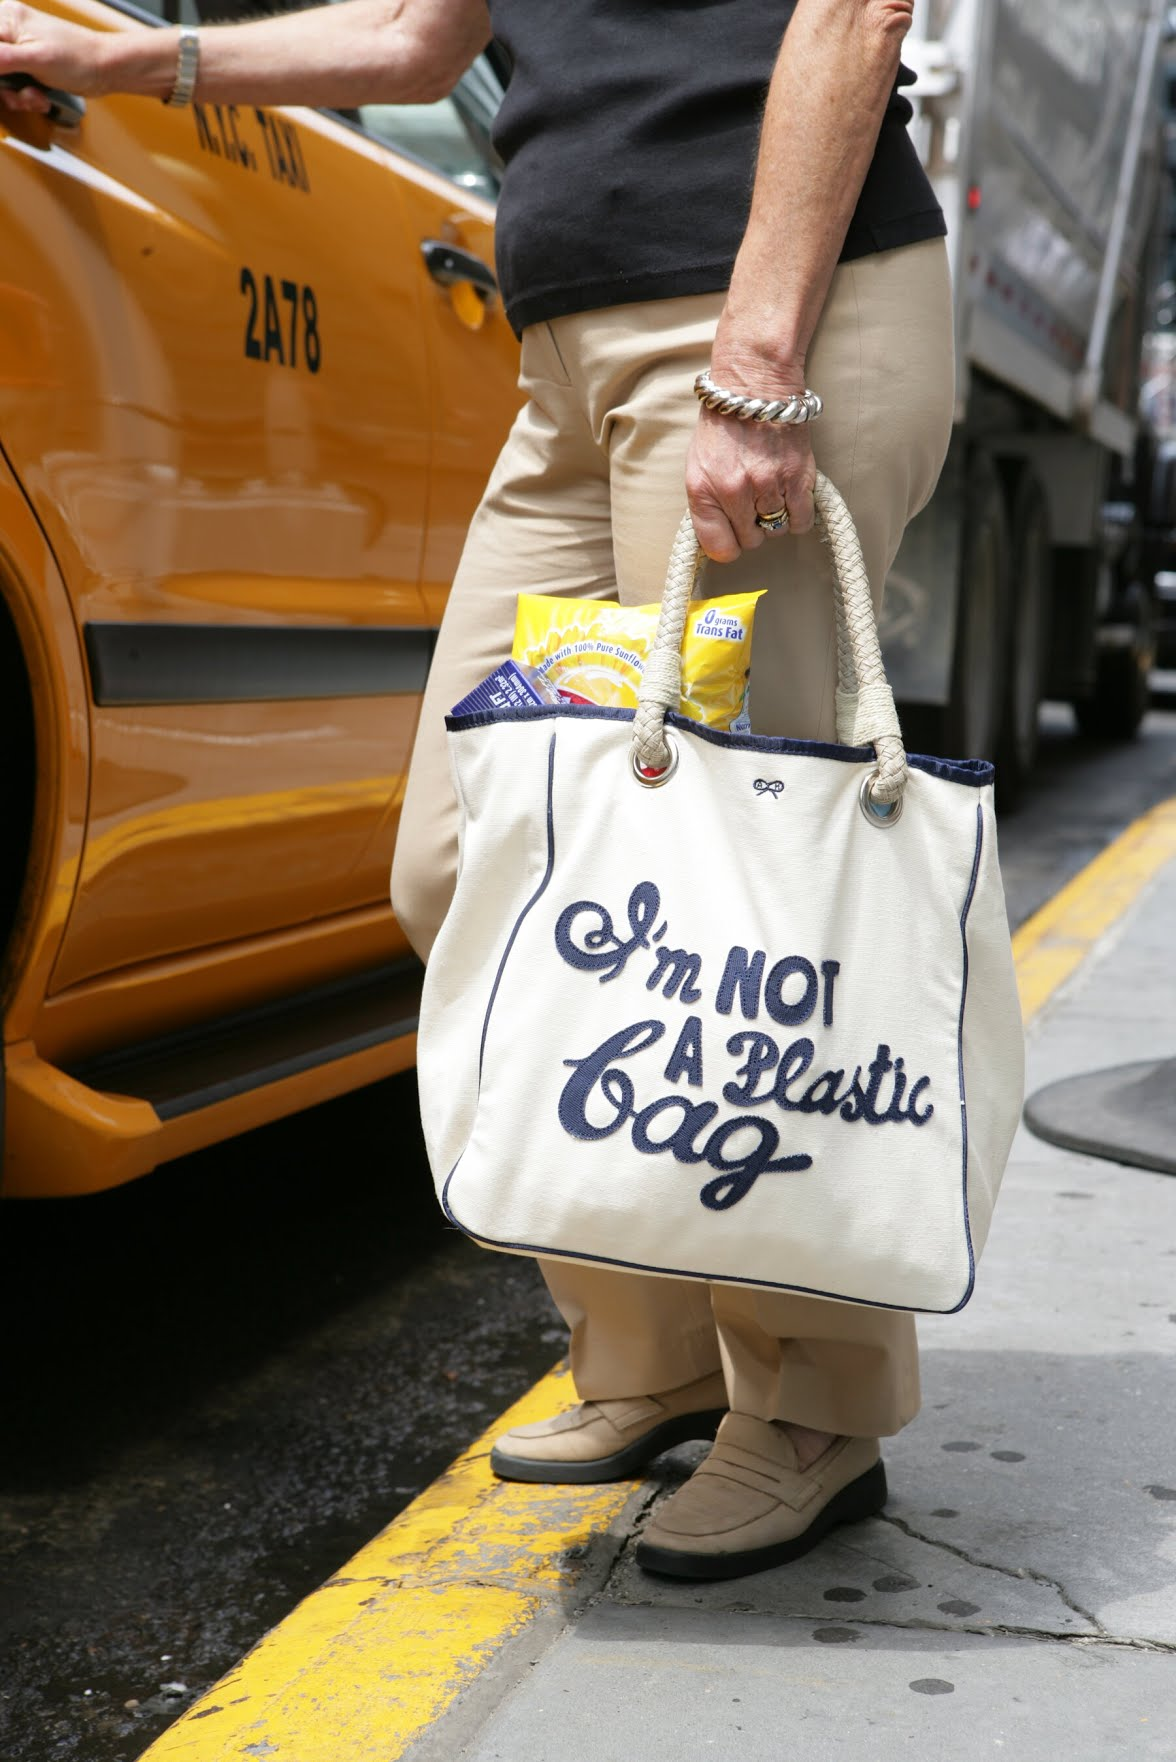 The original Anya Hindmarch tote, sold at Whole Foods for $15 back in 2007, that kick-started the anti-plastic-bag campaign.